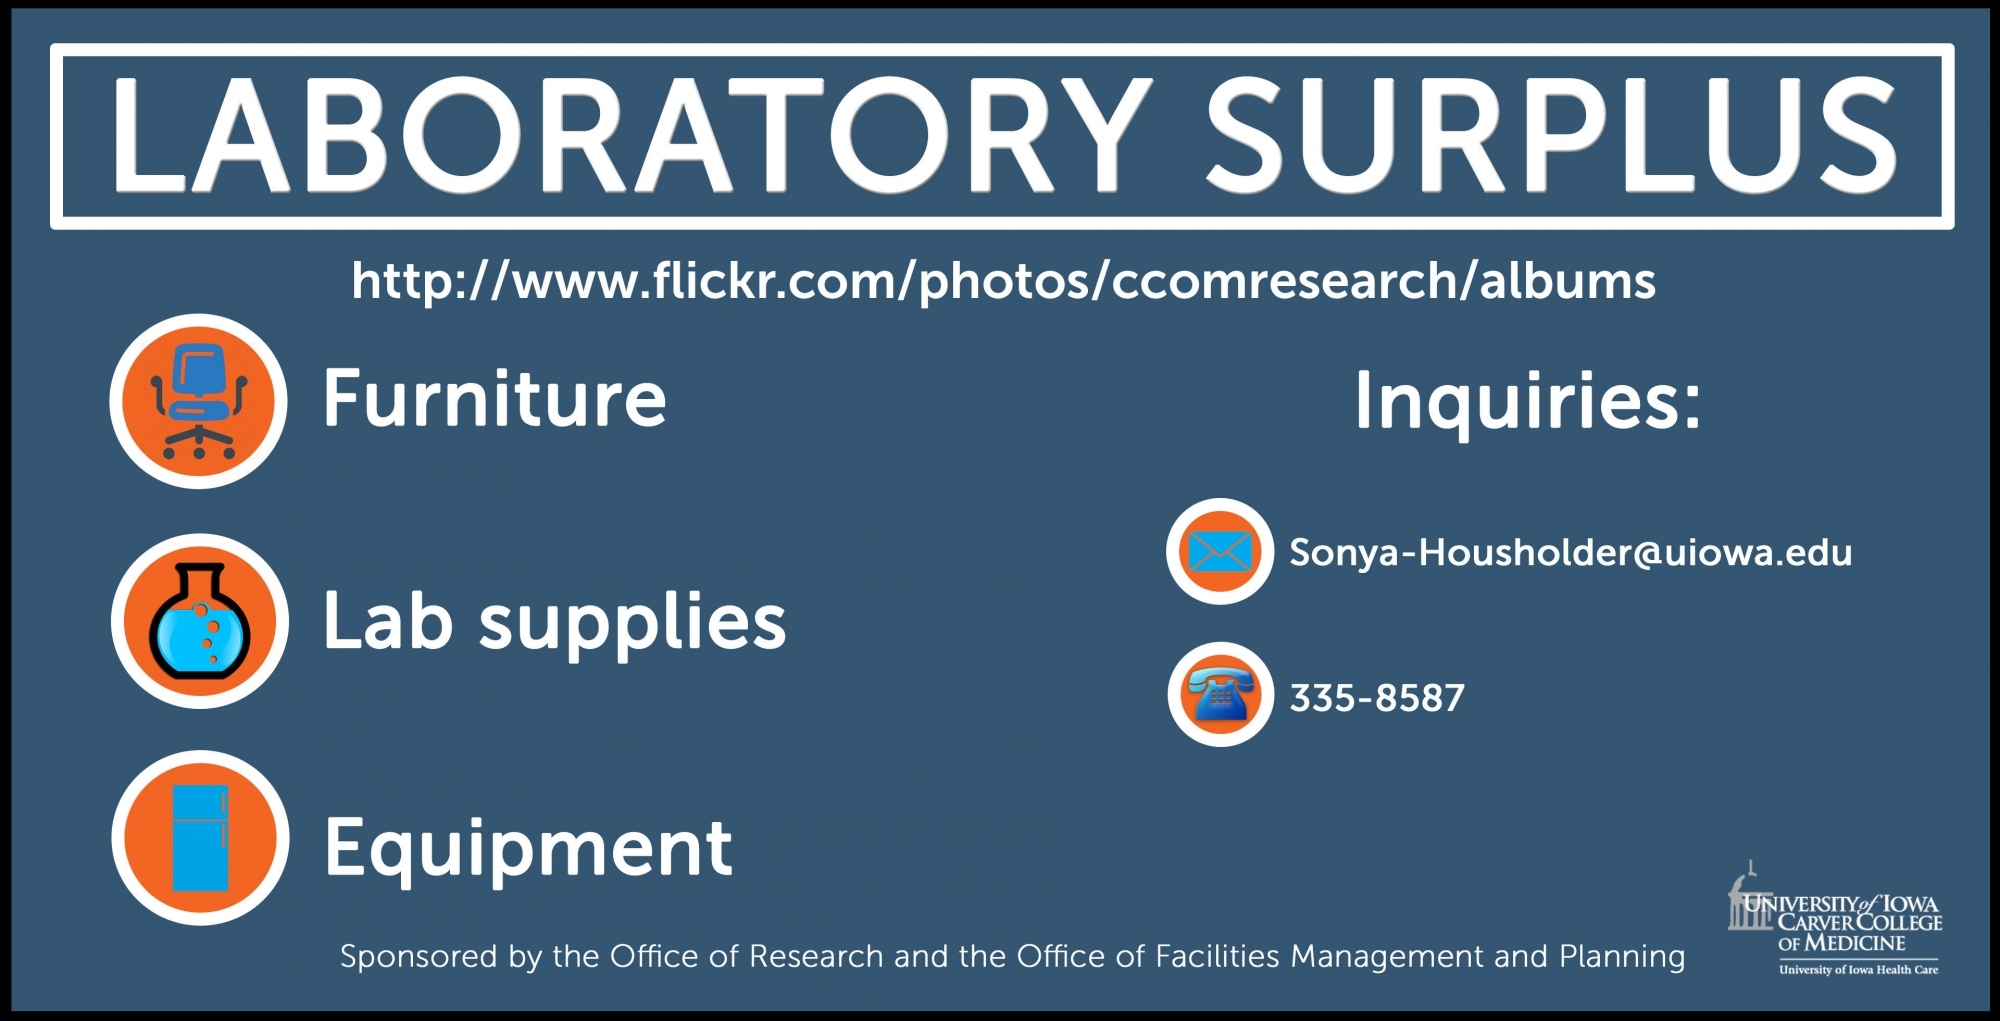 CCOM Laboratory Surplus slide